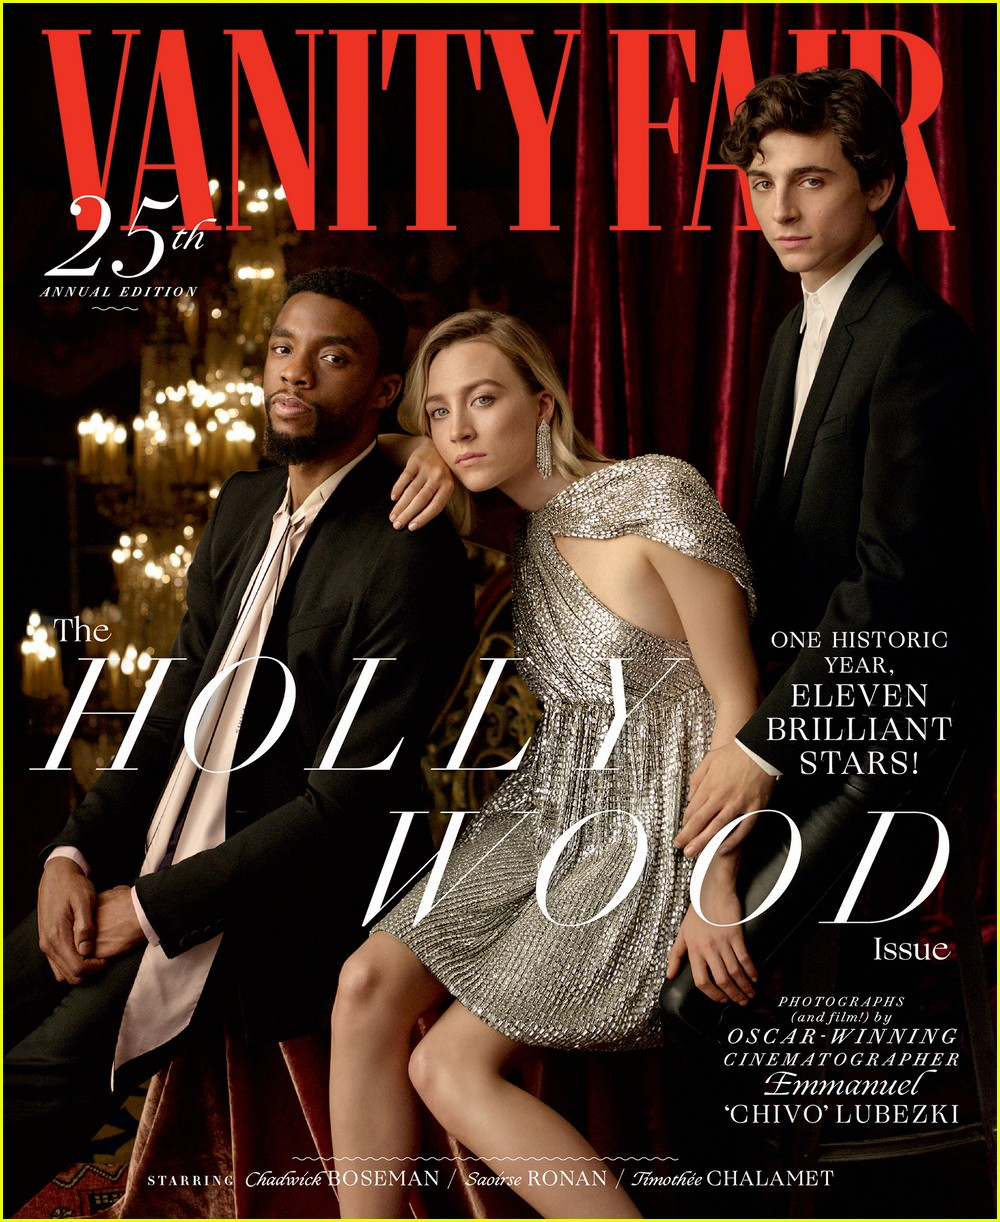 Vanity Fair's Hollywood Issue Features 11 Famous Stars